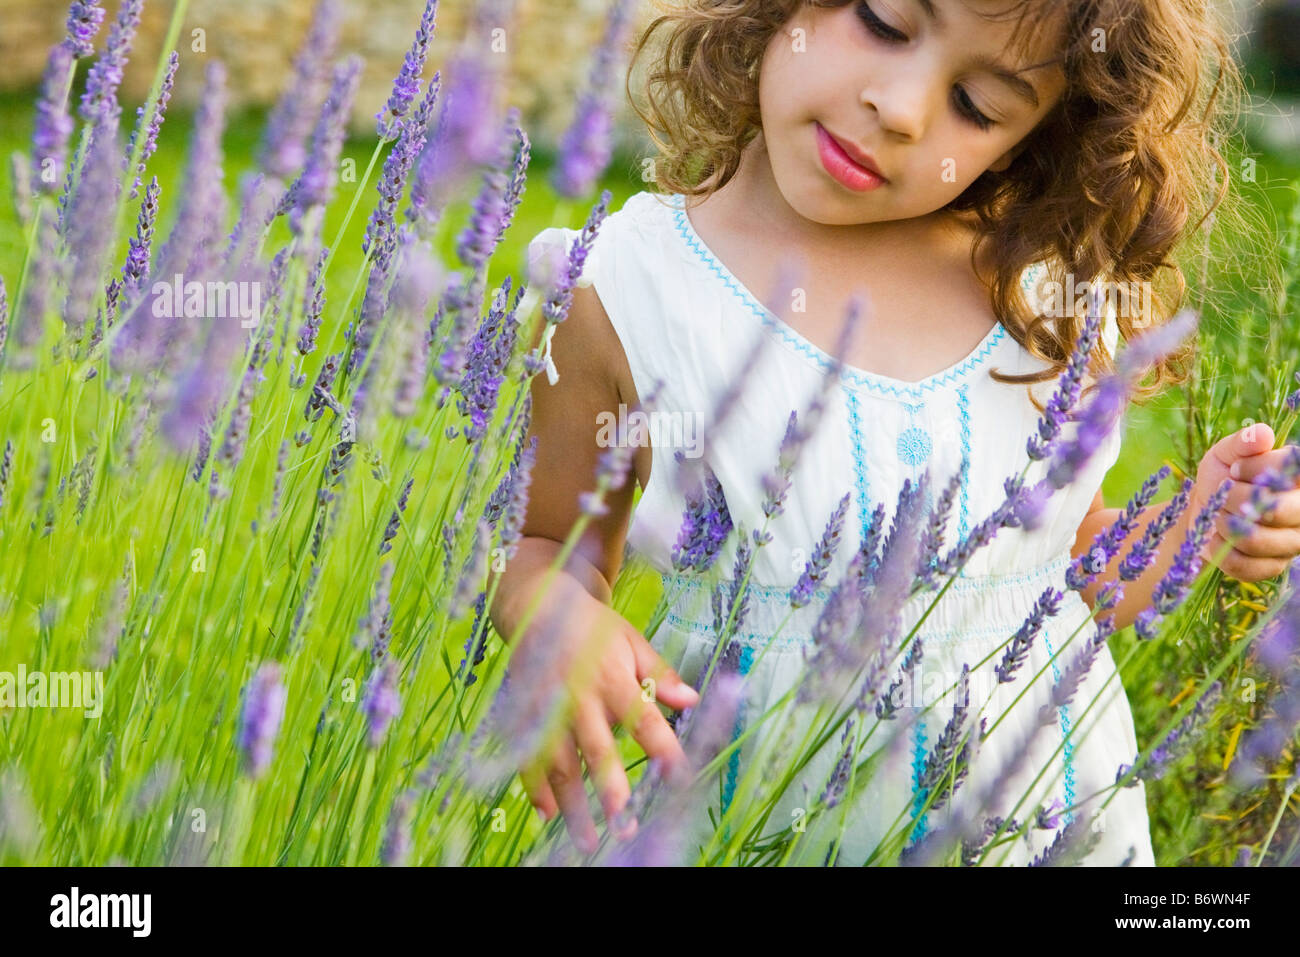 A girl looking at lavender - Stock Image